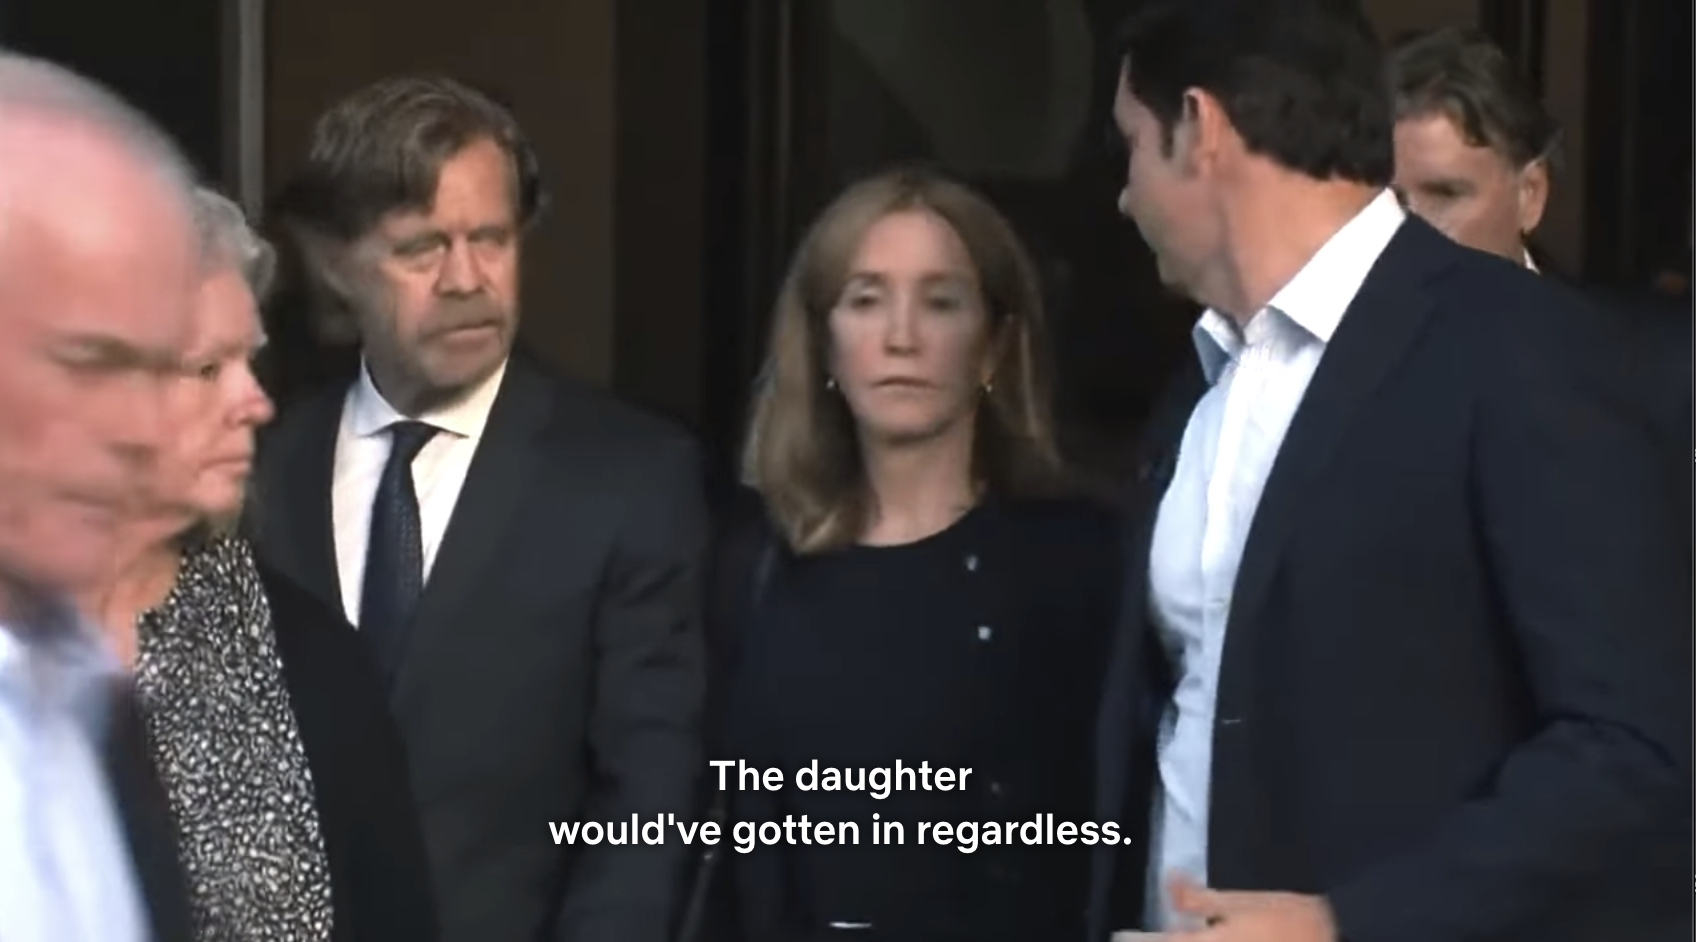 Felicity Huffman and William H. Macy leaving the courtroom